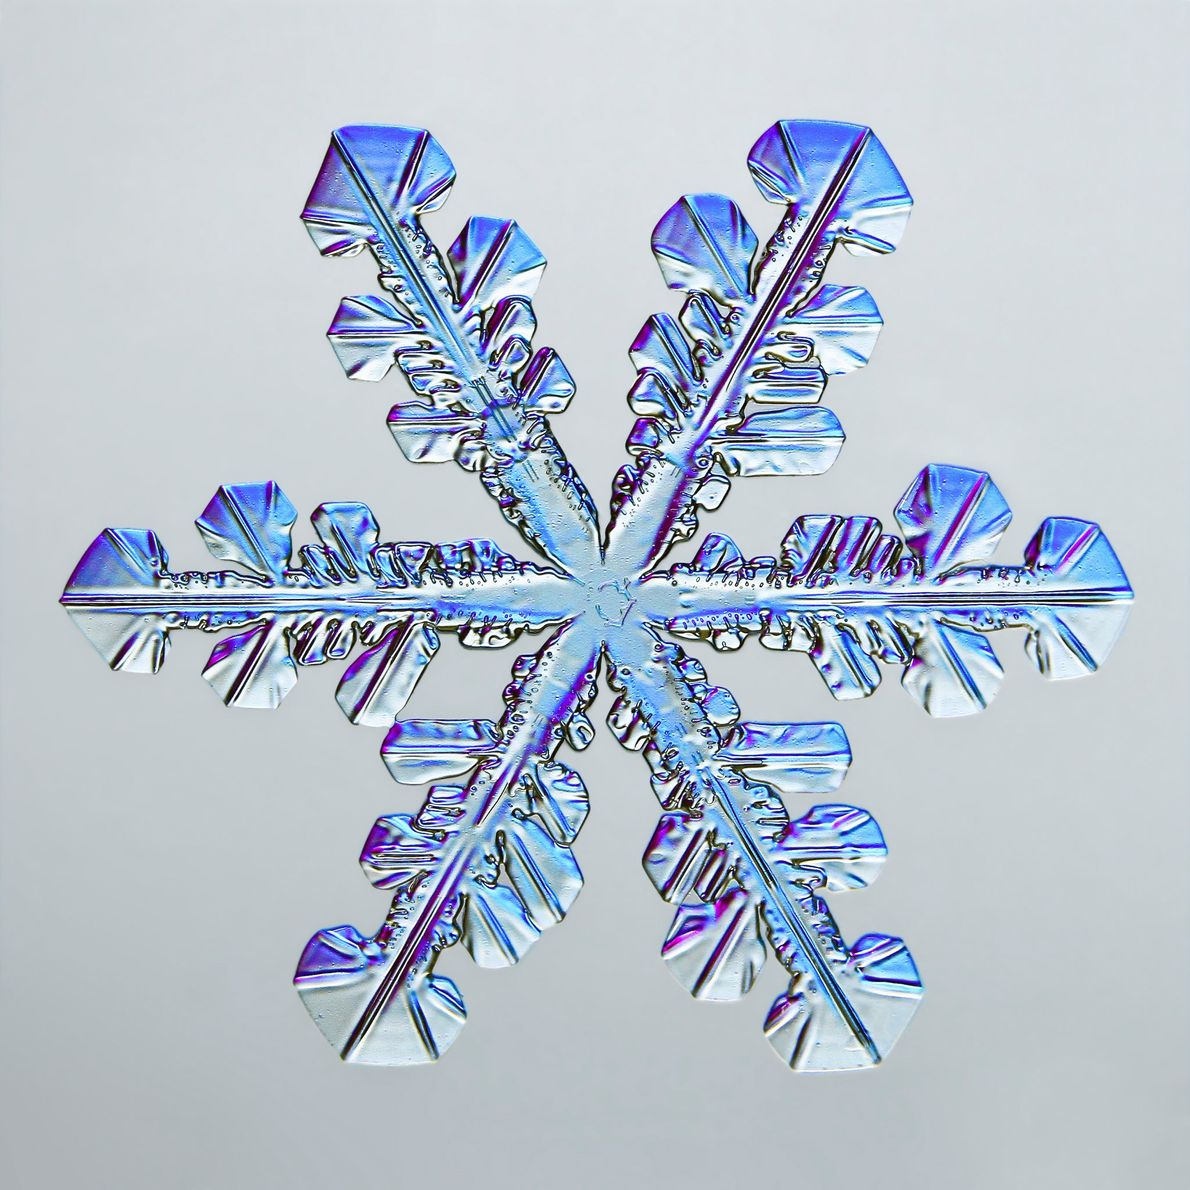 A snowflake's many hexagonal facets gleam blue and purple, thanks to illumination provided by Vermont-based photographer ...